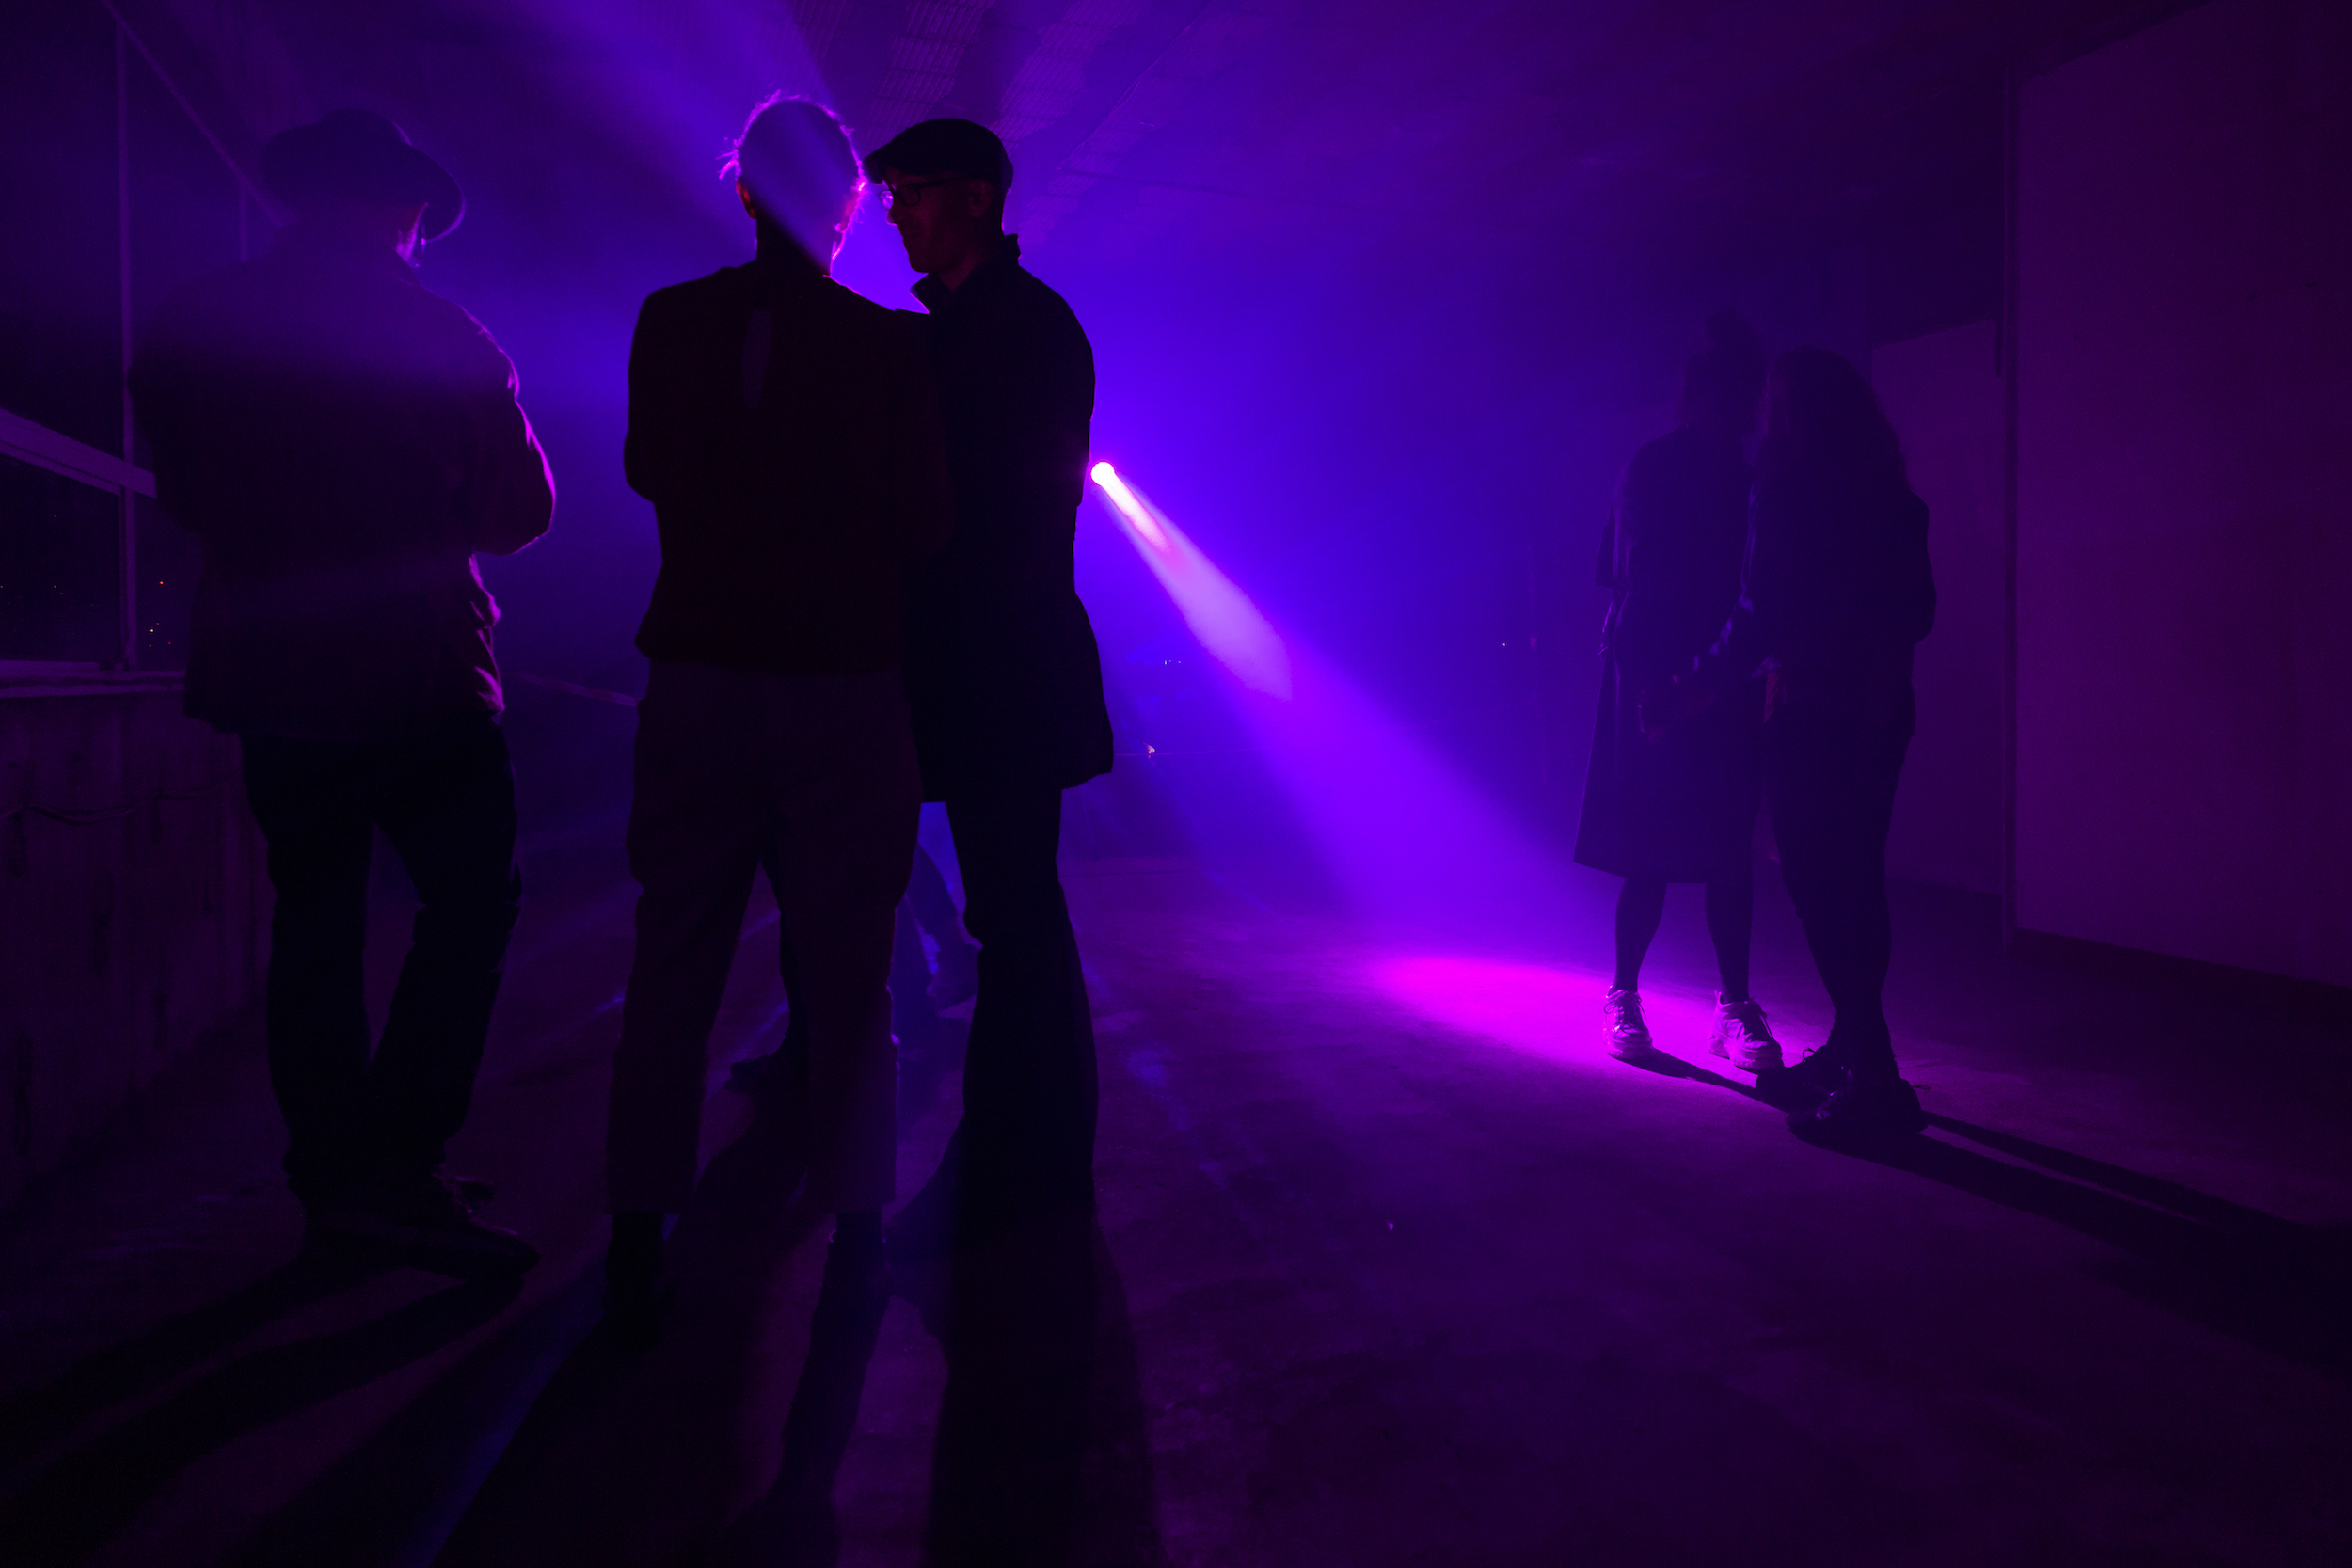 Dark room with purple lighting and silhouettes of a few people in the foreground